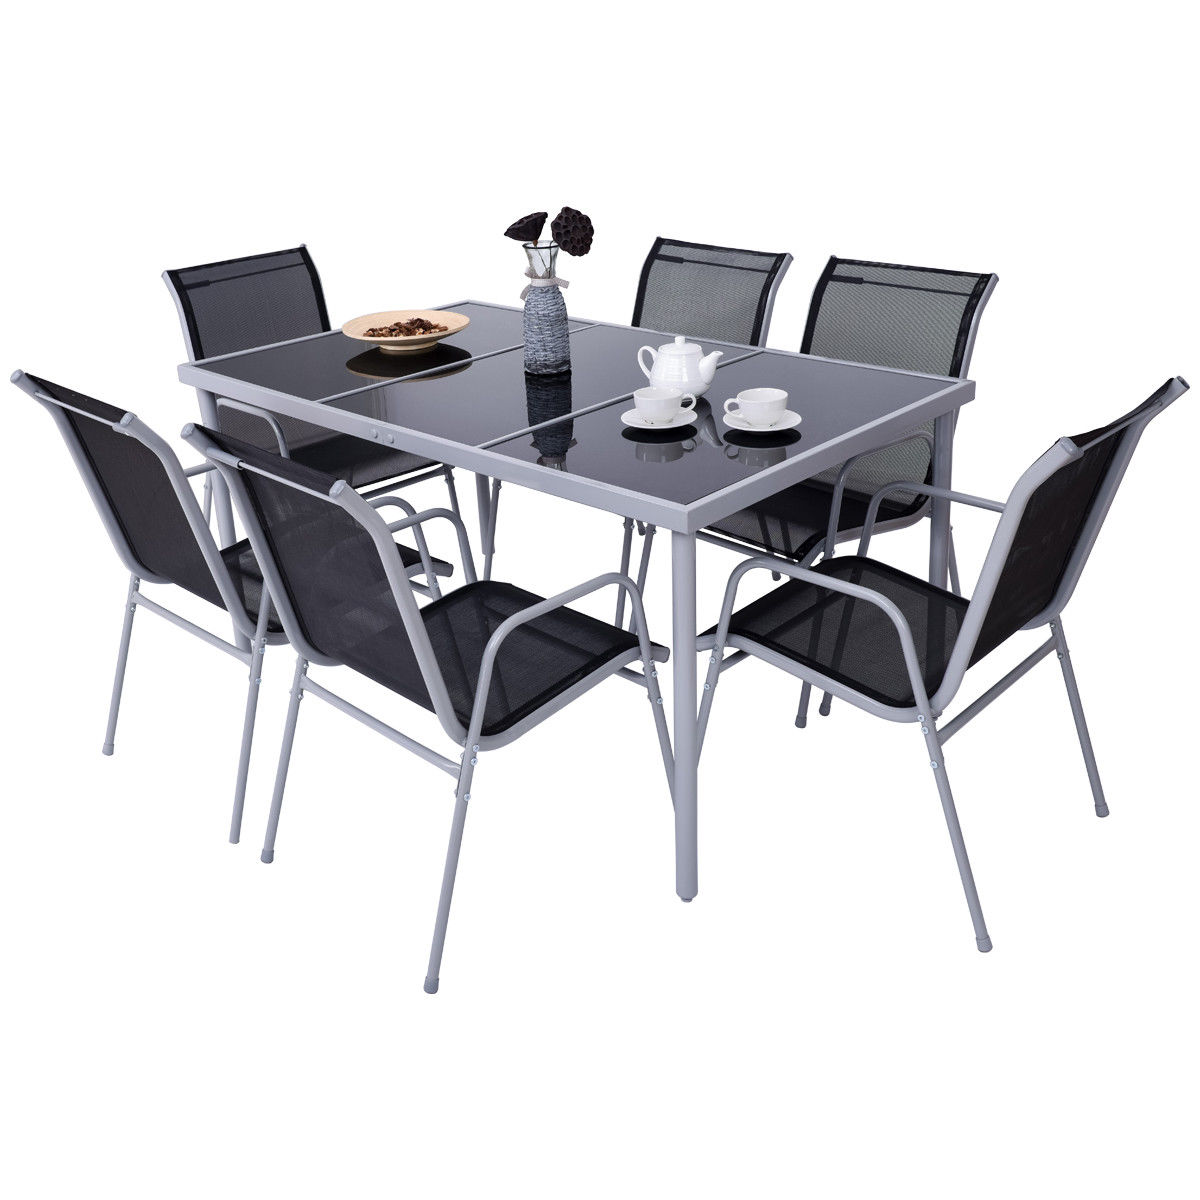 GHP 6-Pcs Steel Black & Silver Patio Chairs with Glass Table Top Dining Furniture Set